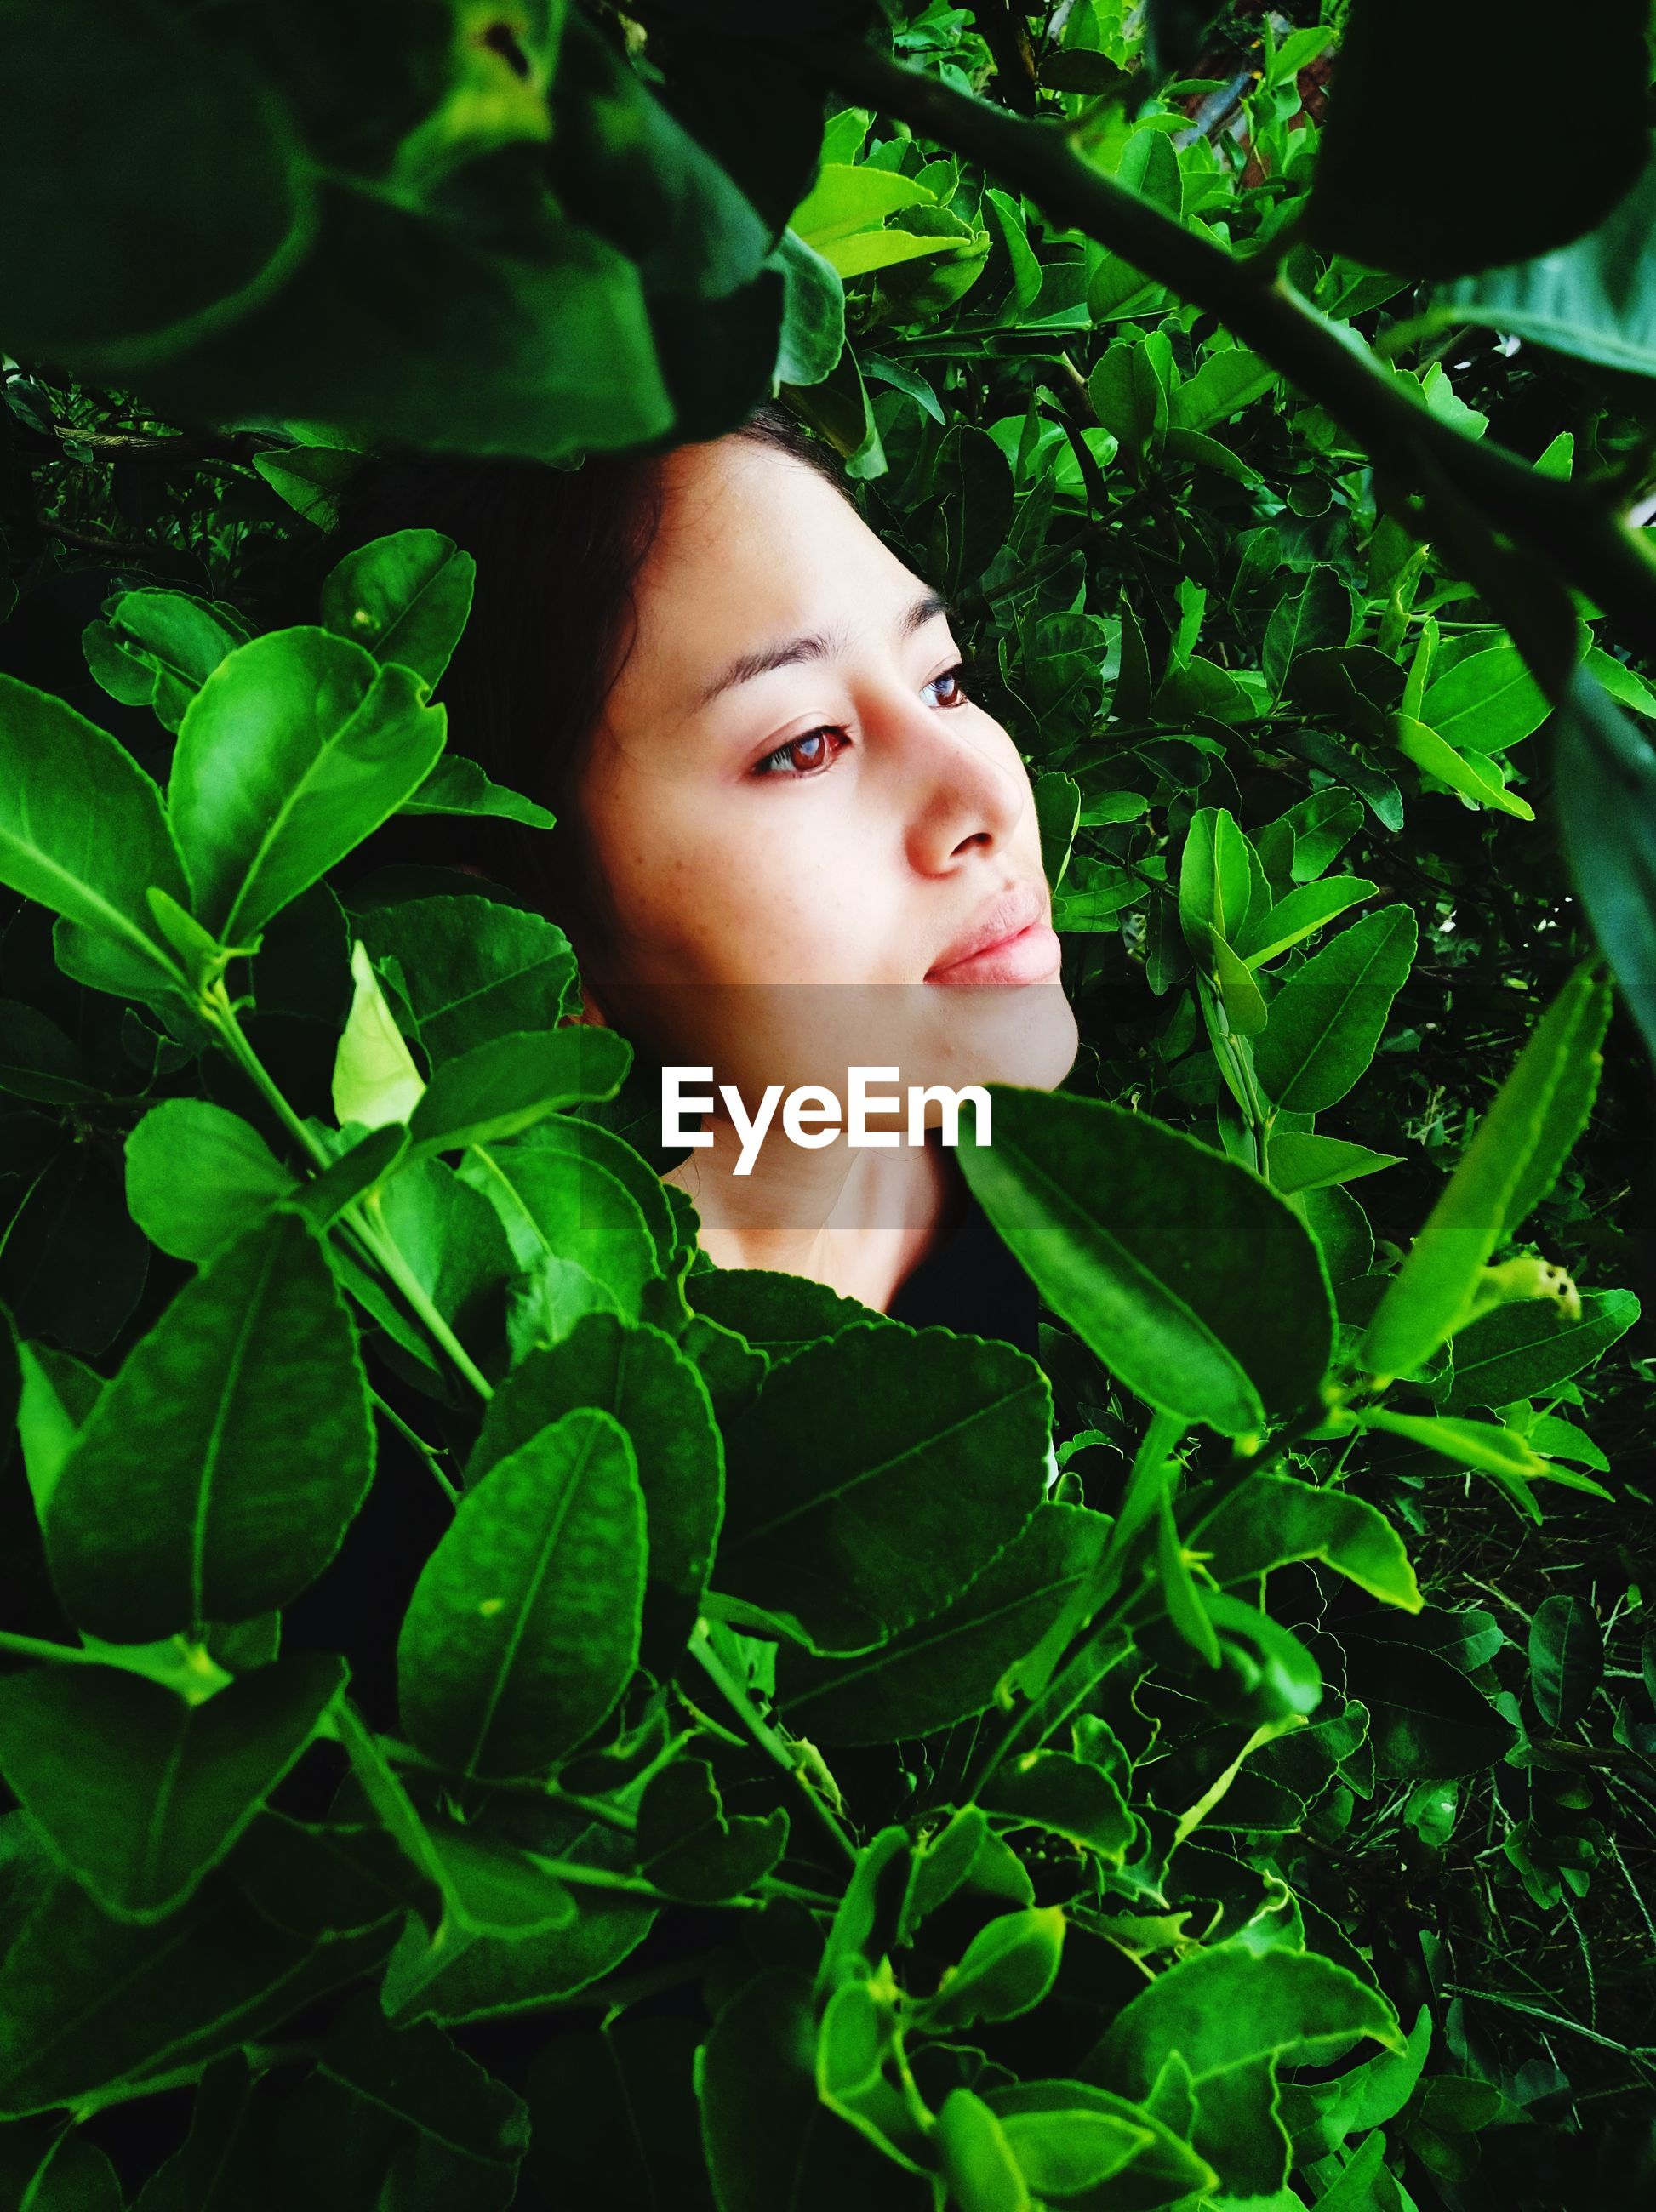 Woman looking away amidst plants